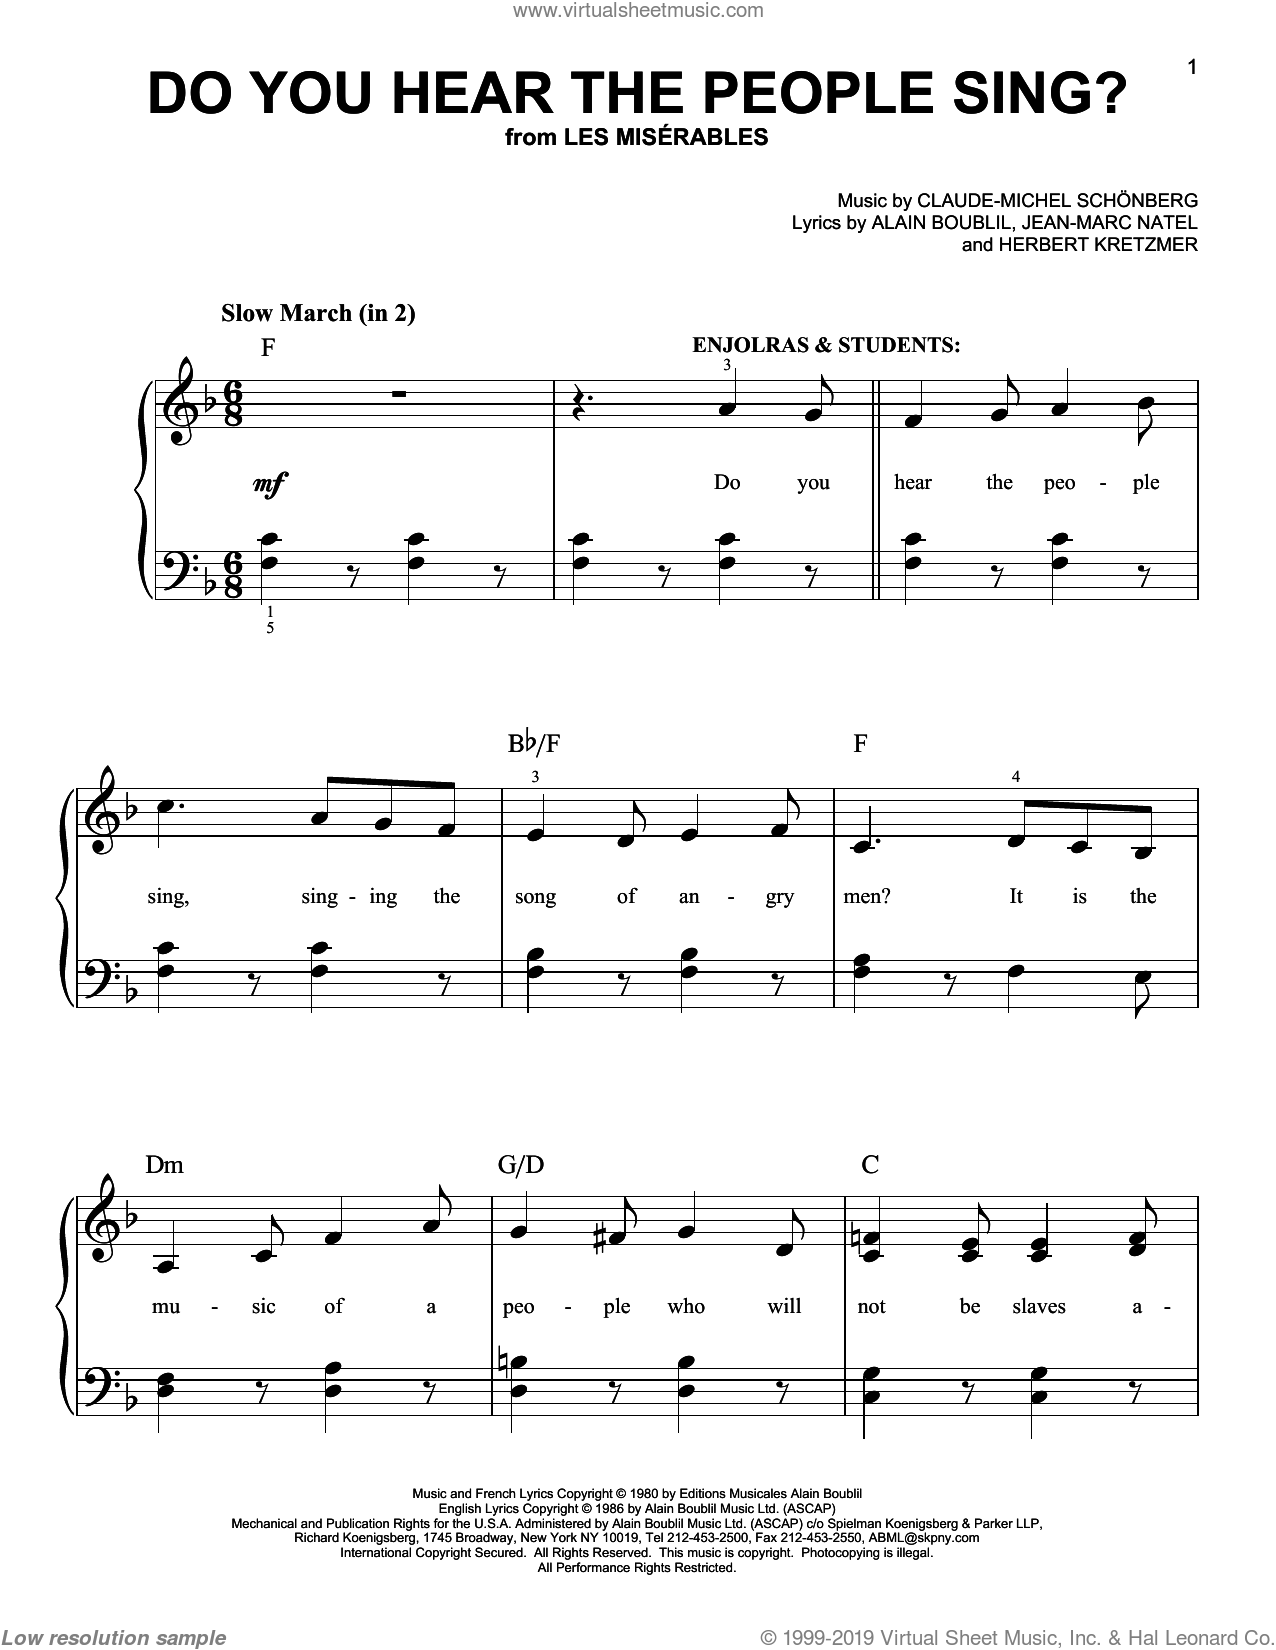 Do You Hear The People Sing? sheet music for piano solo by Herbert Kretzmer, Alain Boublil and Claude-Michel Schonberg. Score Image Preview.